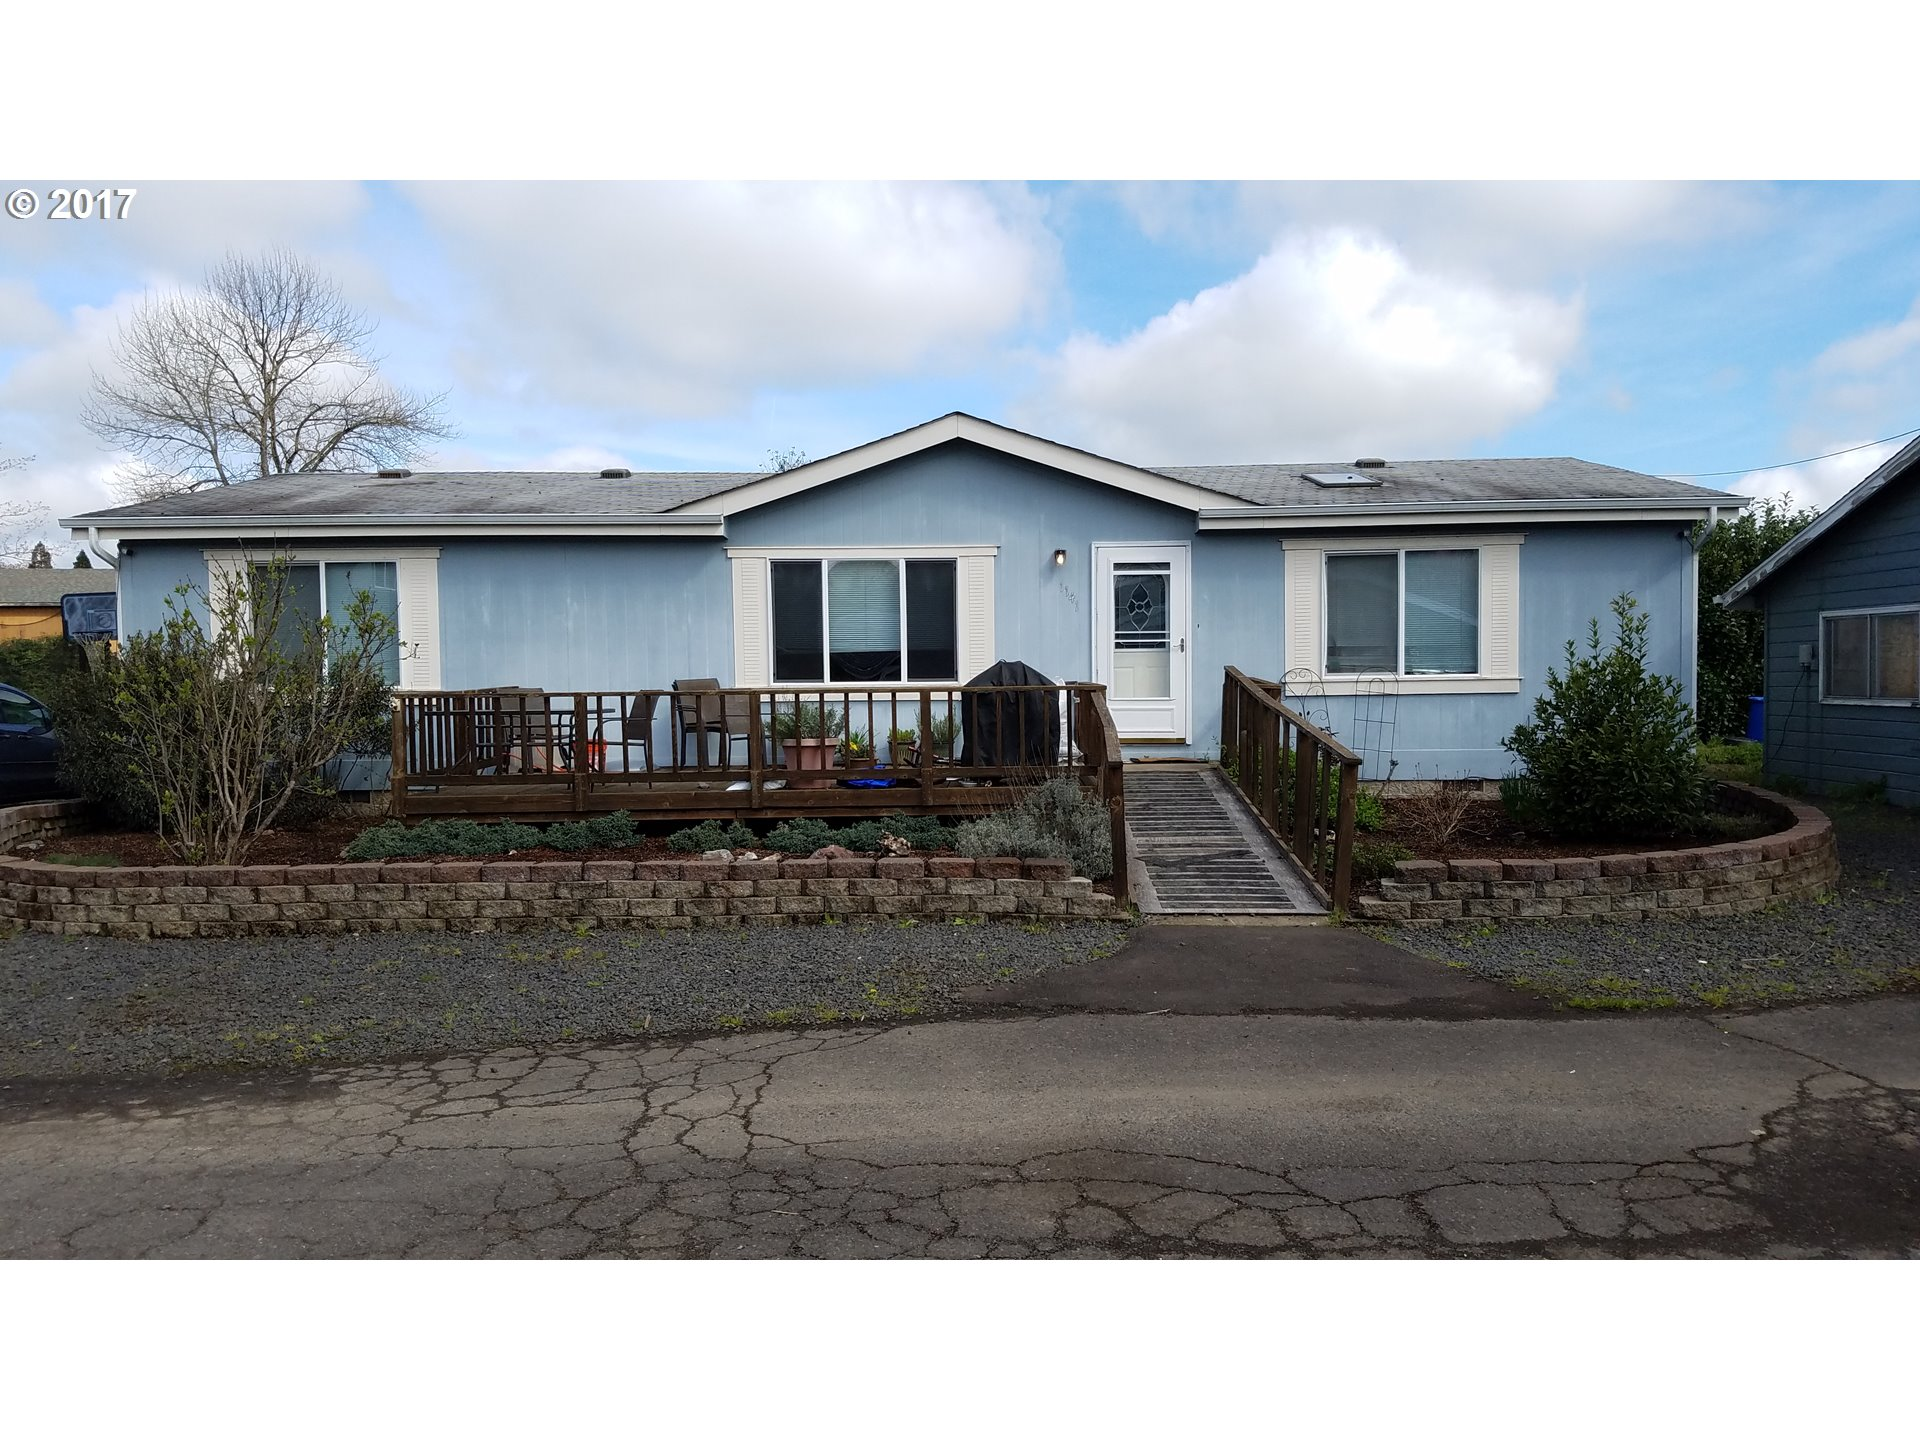 1141 LAUREL AVE, Springfield, OR 97478